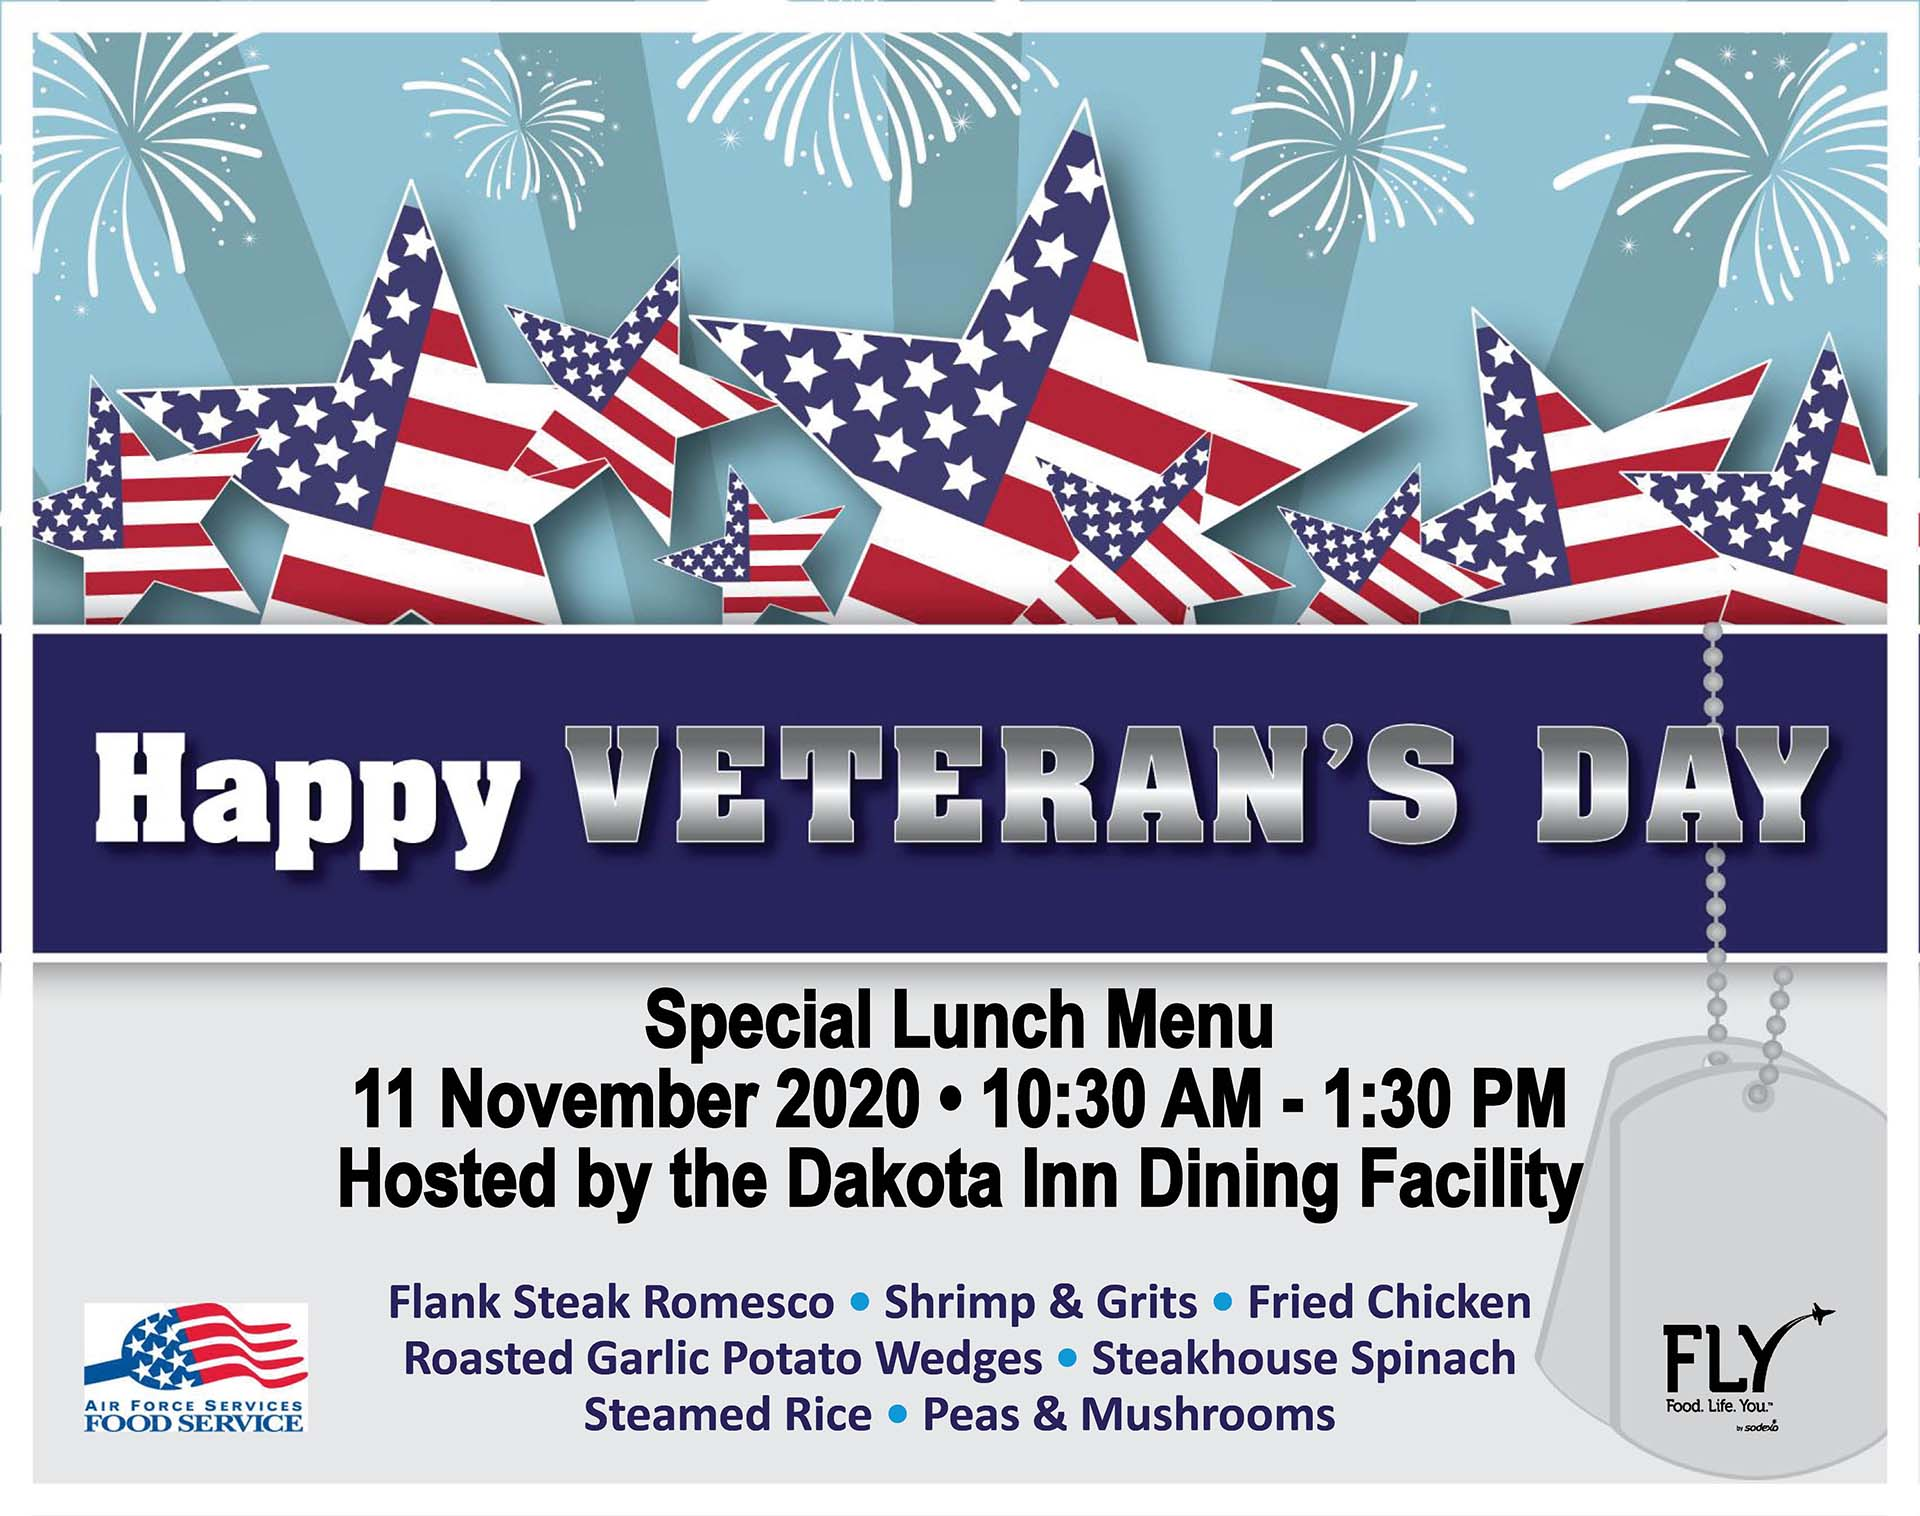 Veterans Day Special Lunch